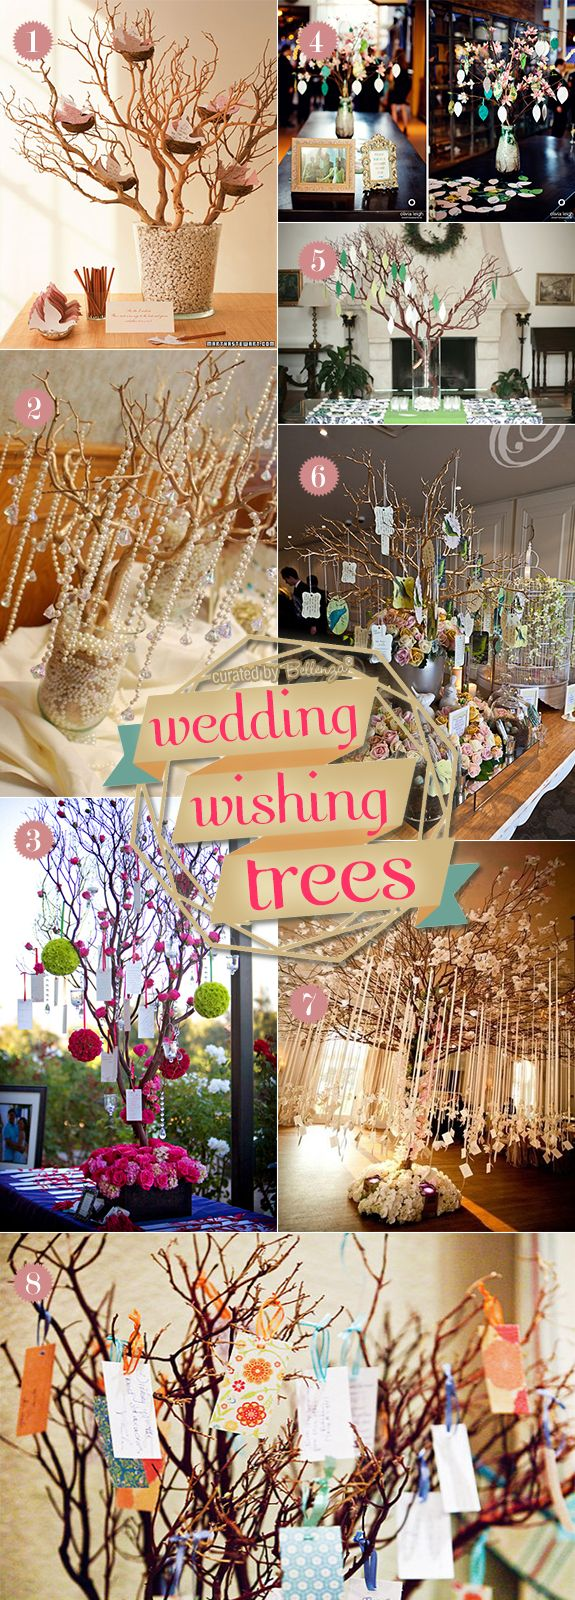 Wedding Wish Tree Ideas From Using Real Trees To Tabletop Varieties Faux Branches In Vases See Full Post At The Bellenza Bistro